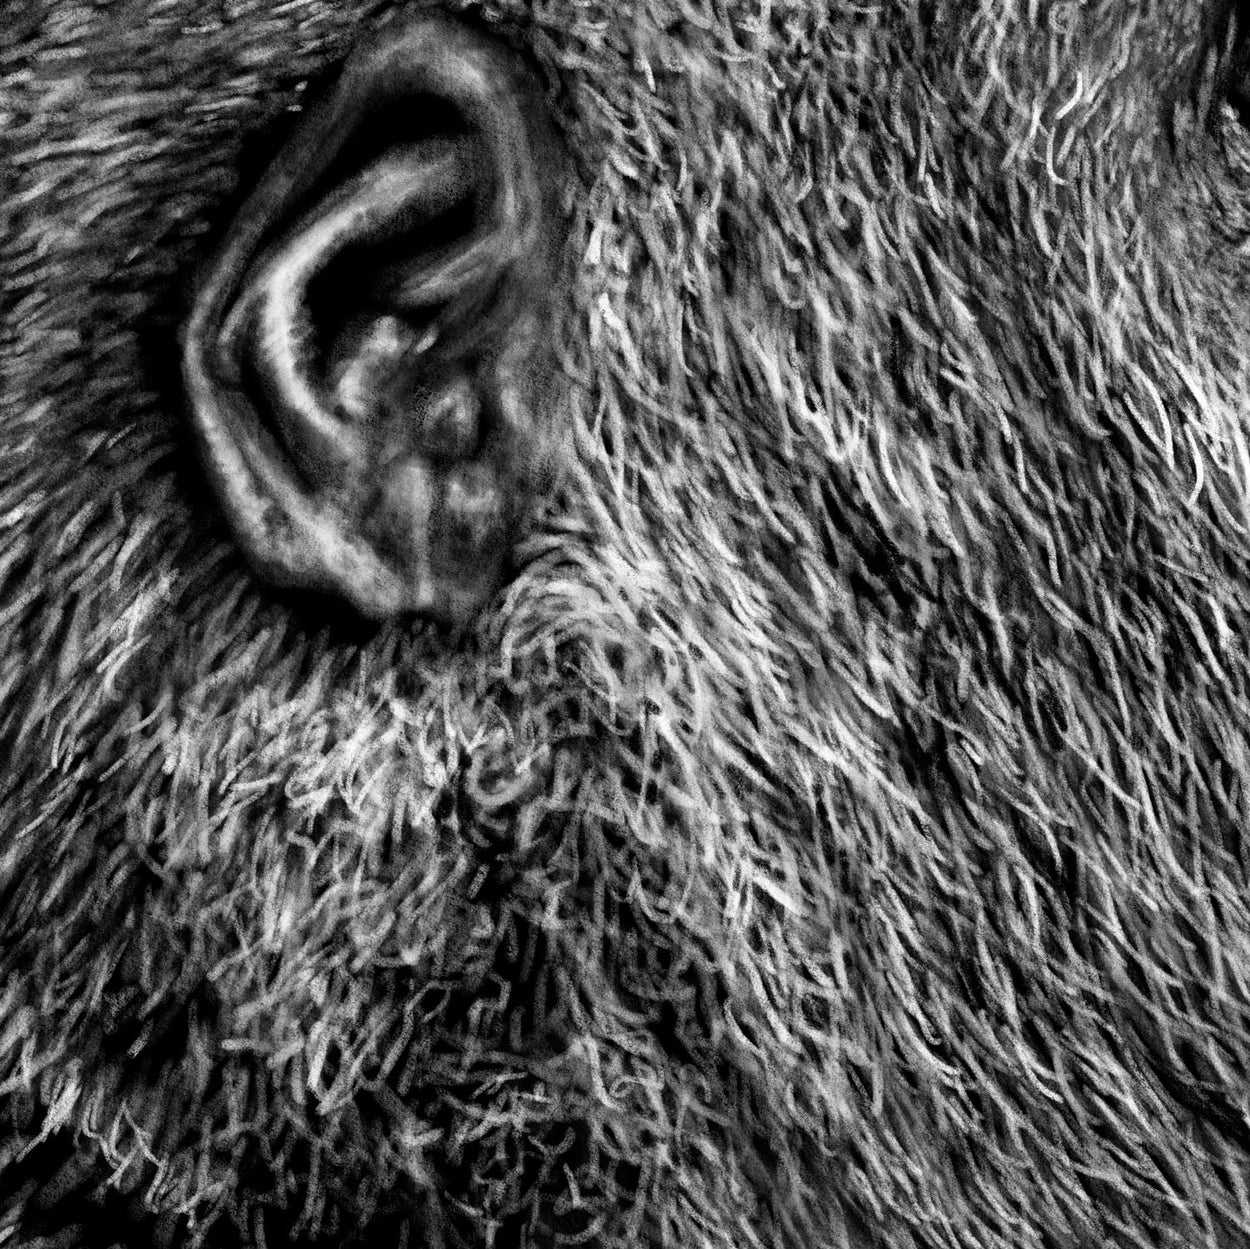 Gorilla Digital Drawing Close-up - The Thriving Wild